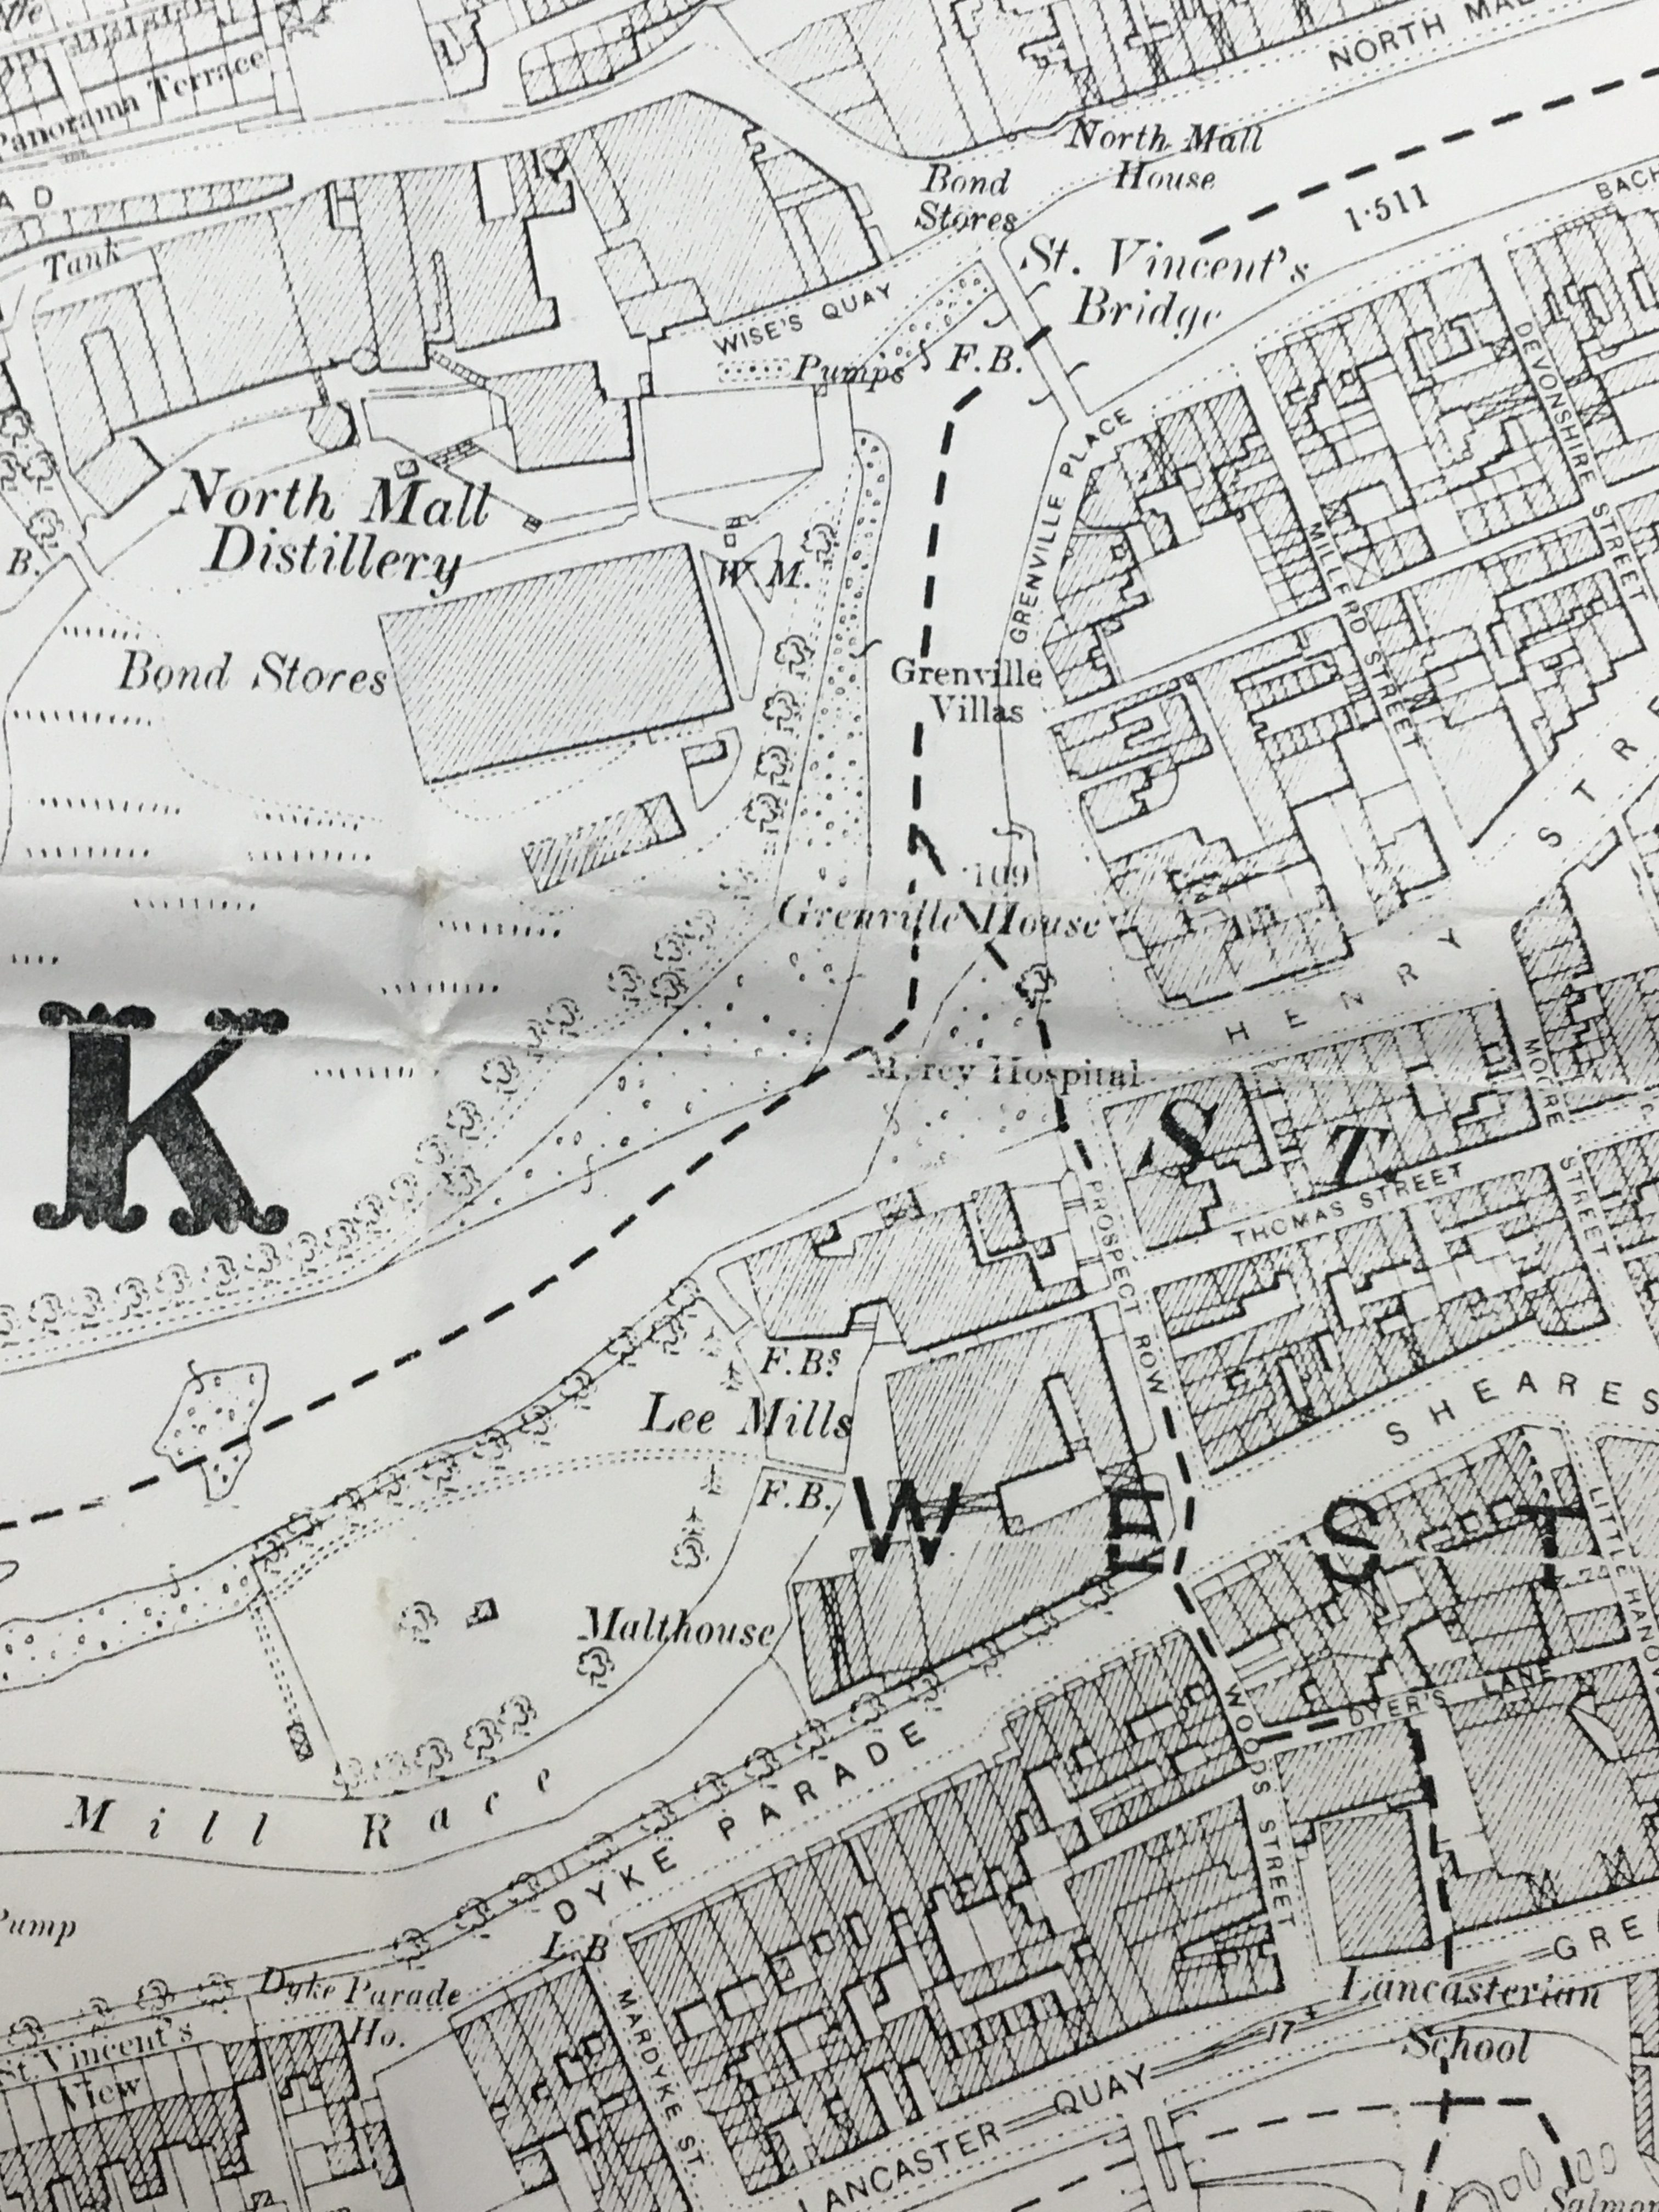 Map of Lee Mills & environs, Cork 1900 (source: Cork City Library)